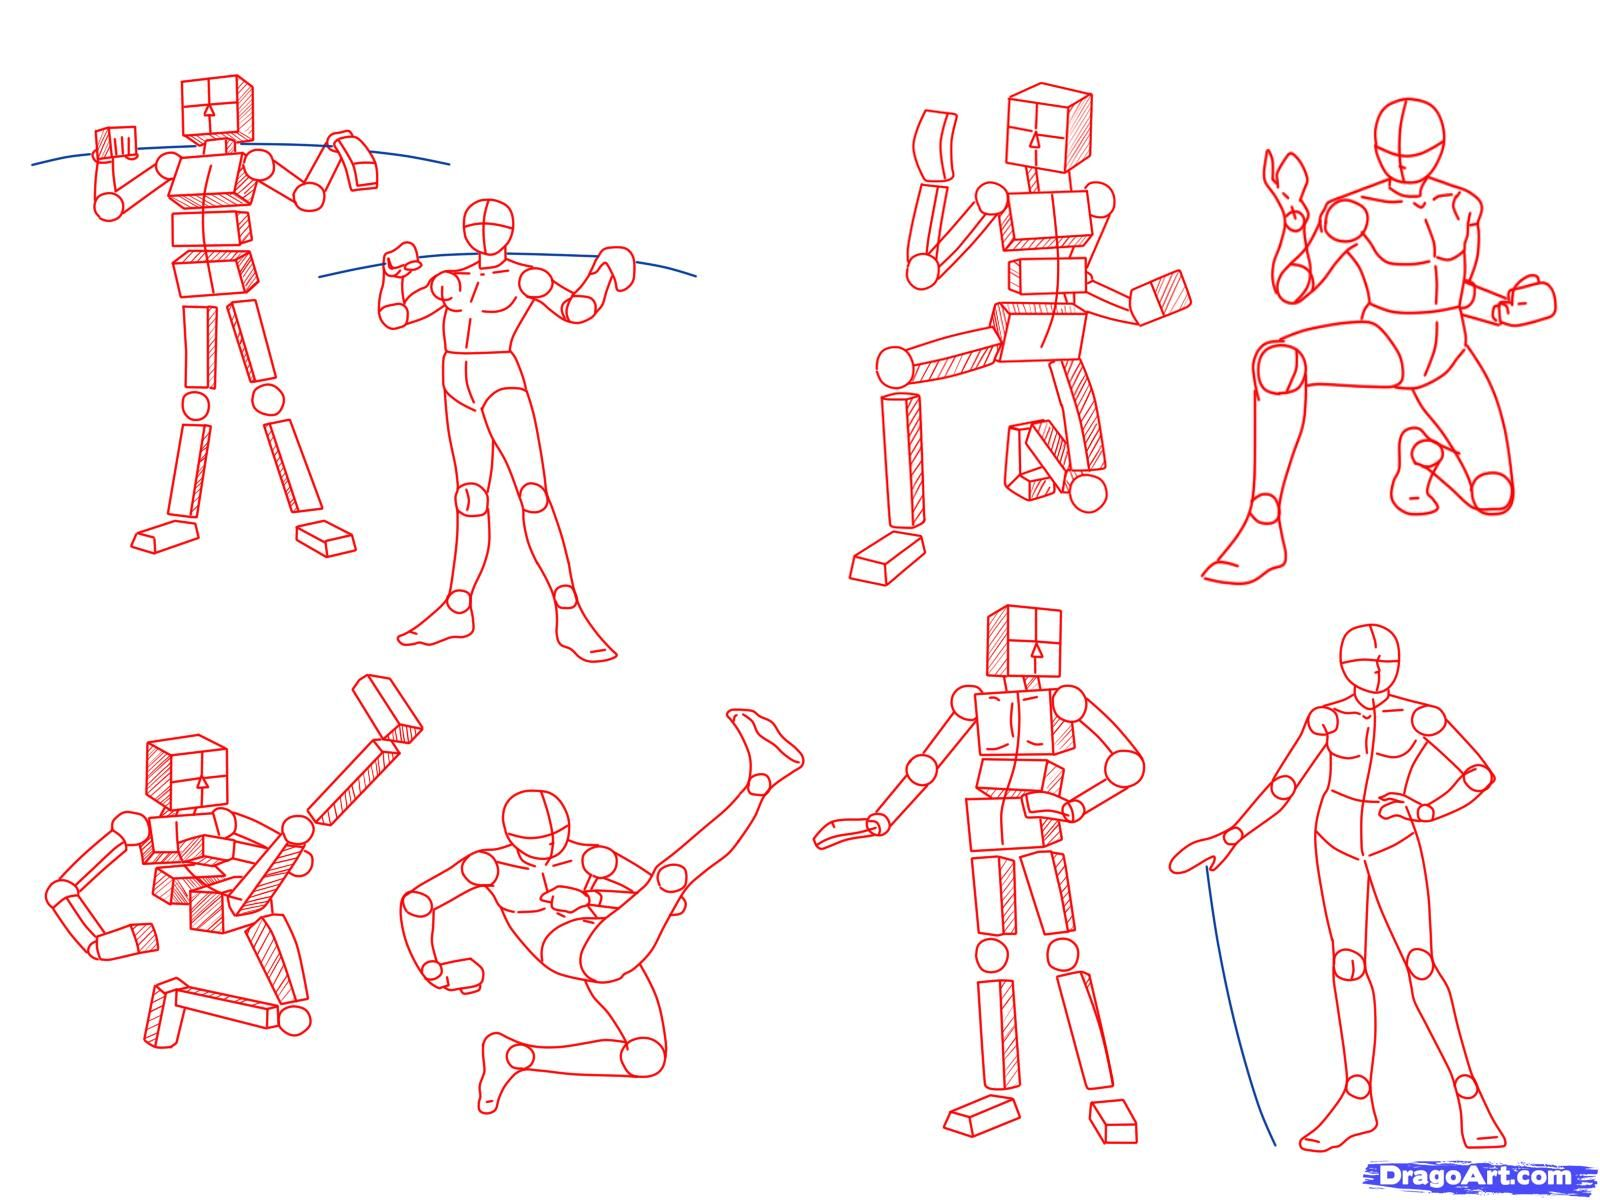 Anime Poses Step 2 Think About Drawing Simple Polygons When You Are Drawing An Illustration You Don T Have To Anime Poses Drawing Tutorial Anime Drawings